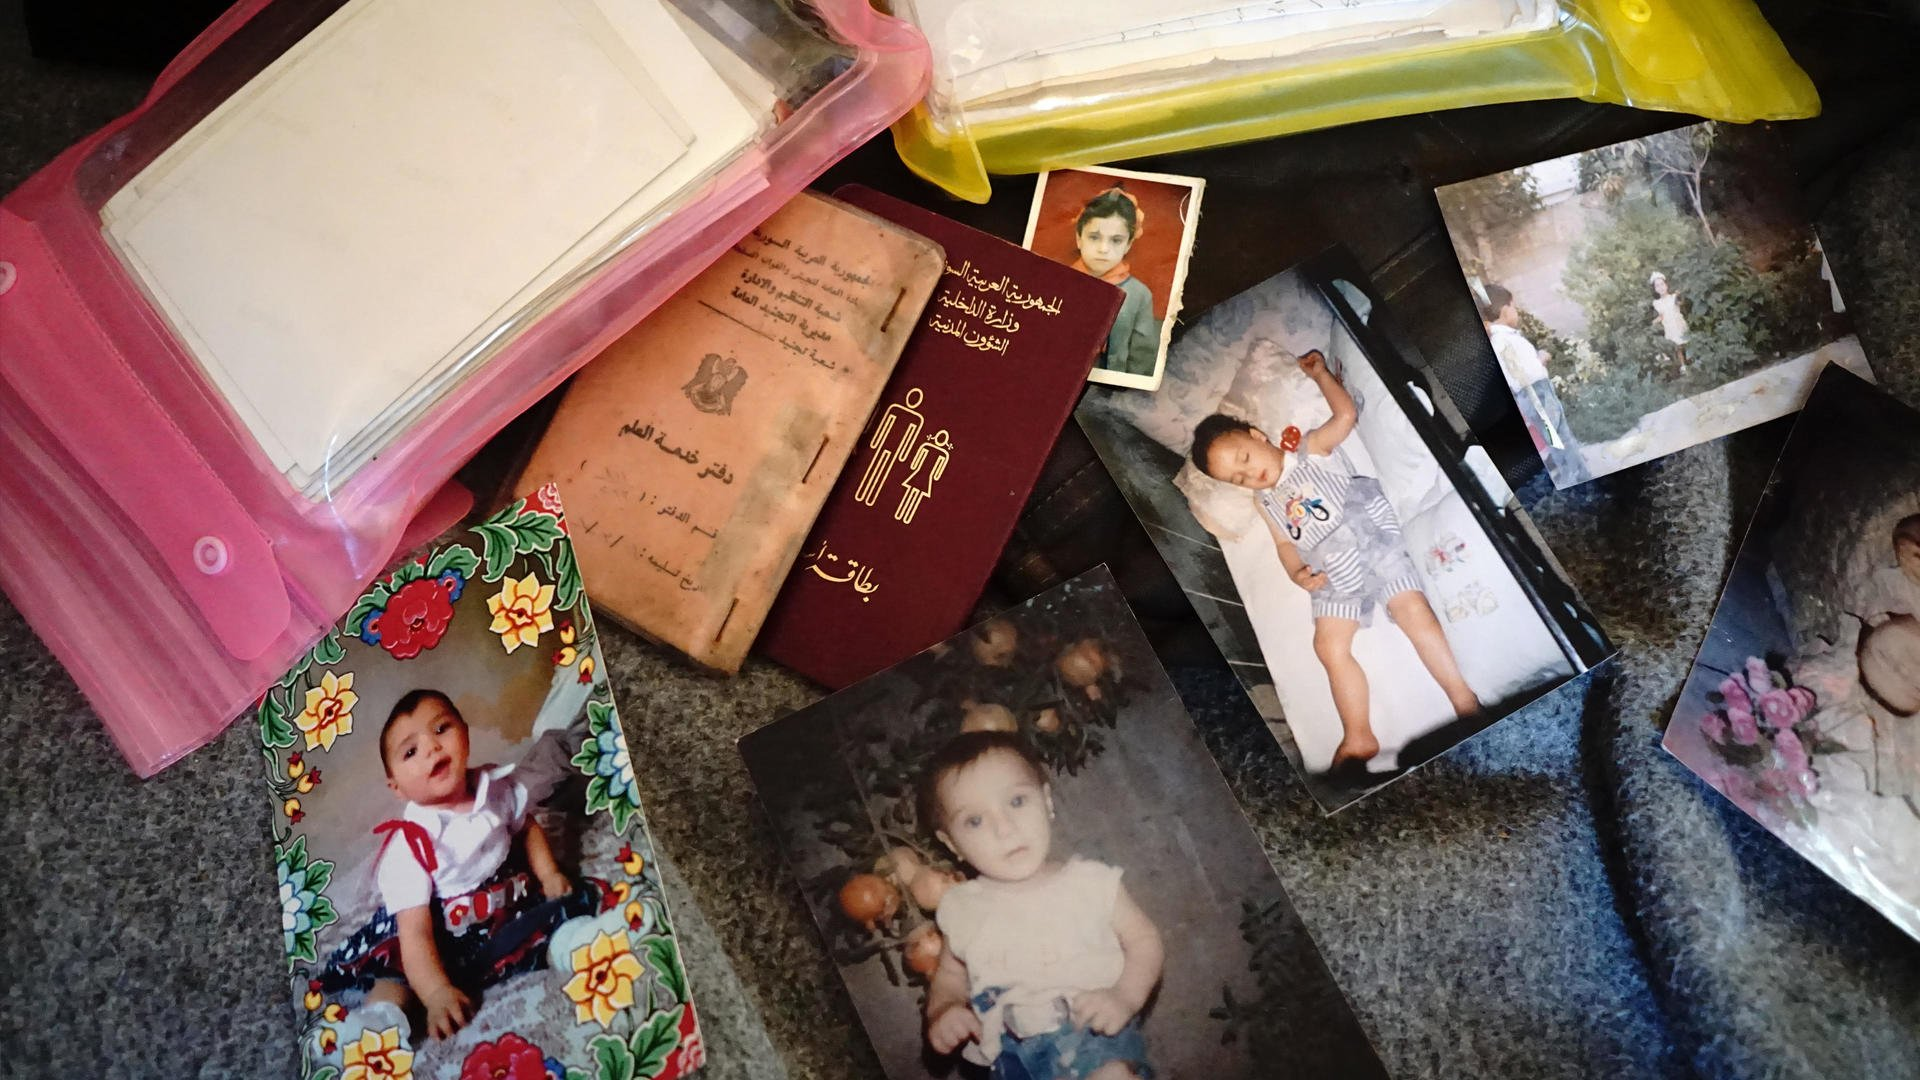 refugees' passports and family photos